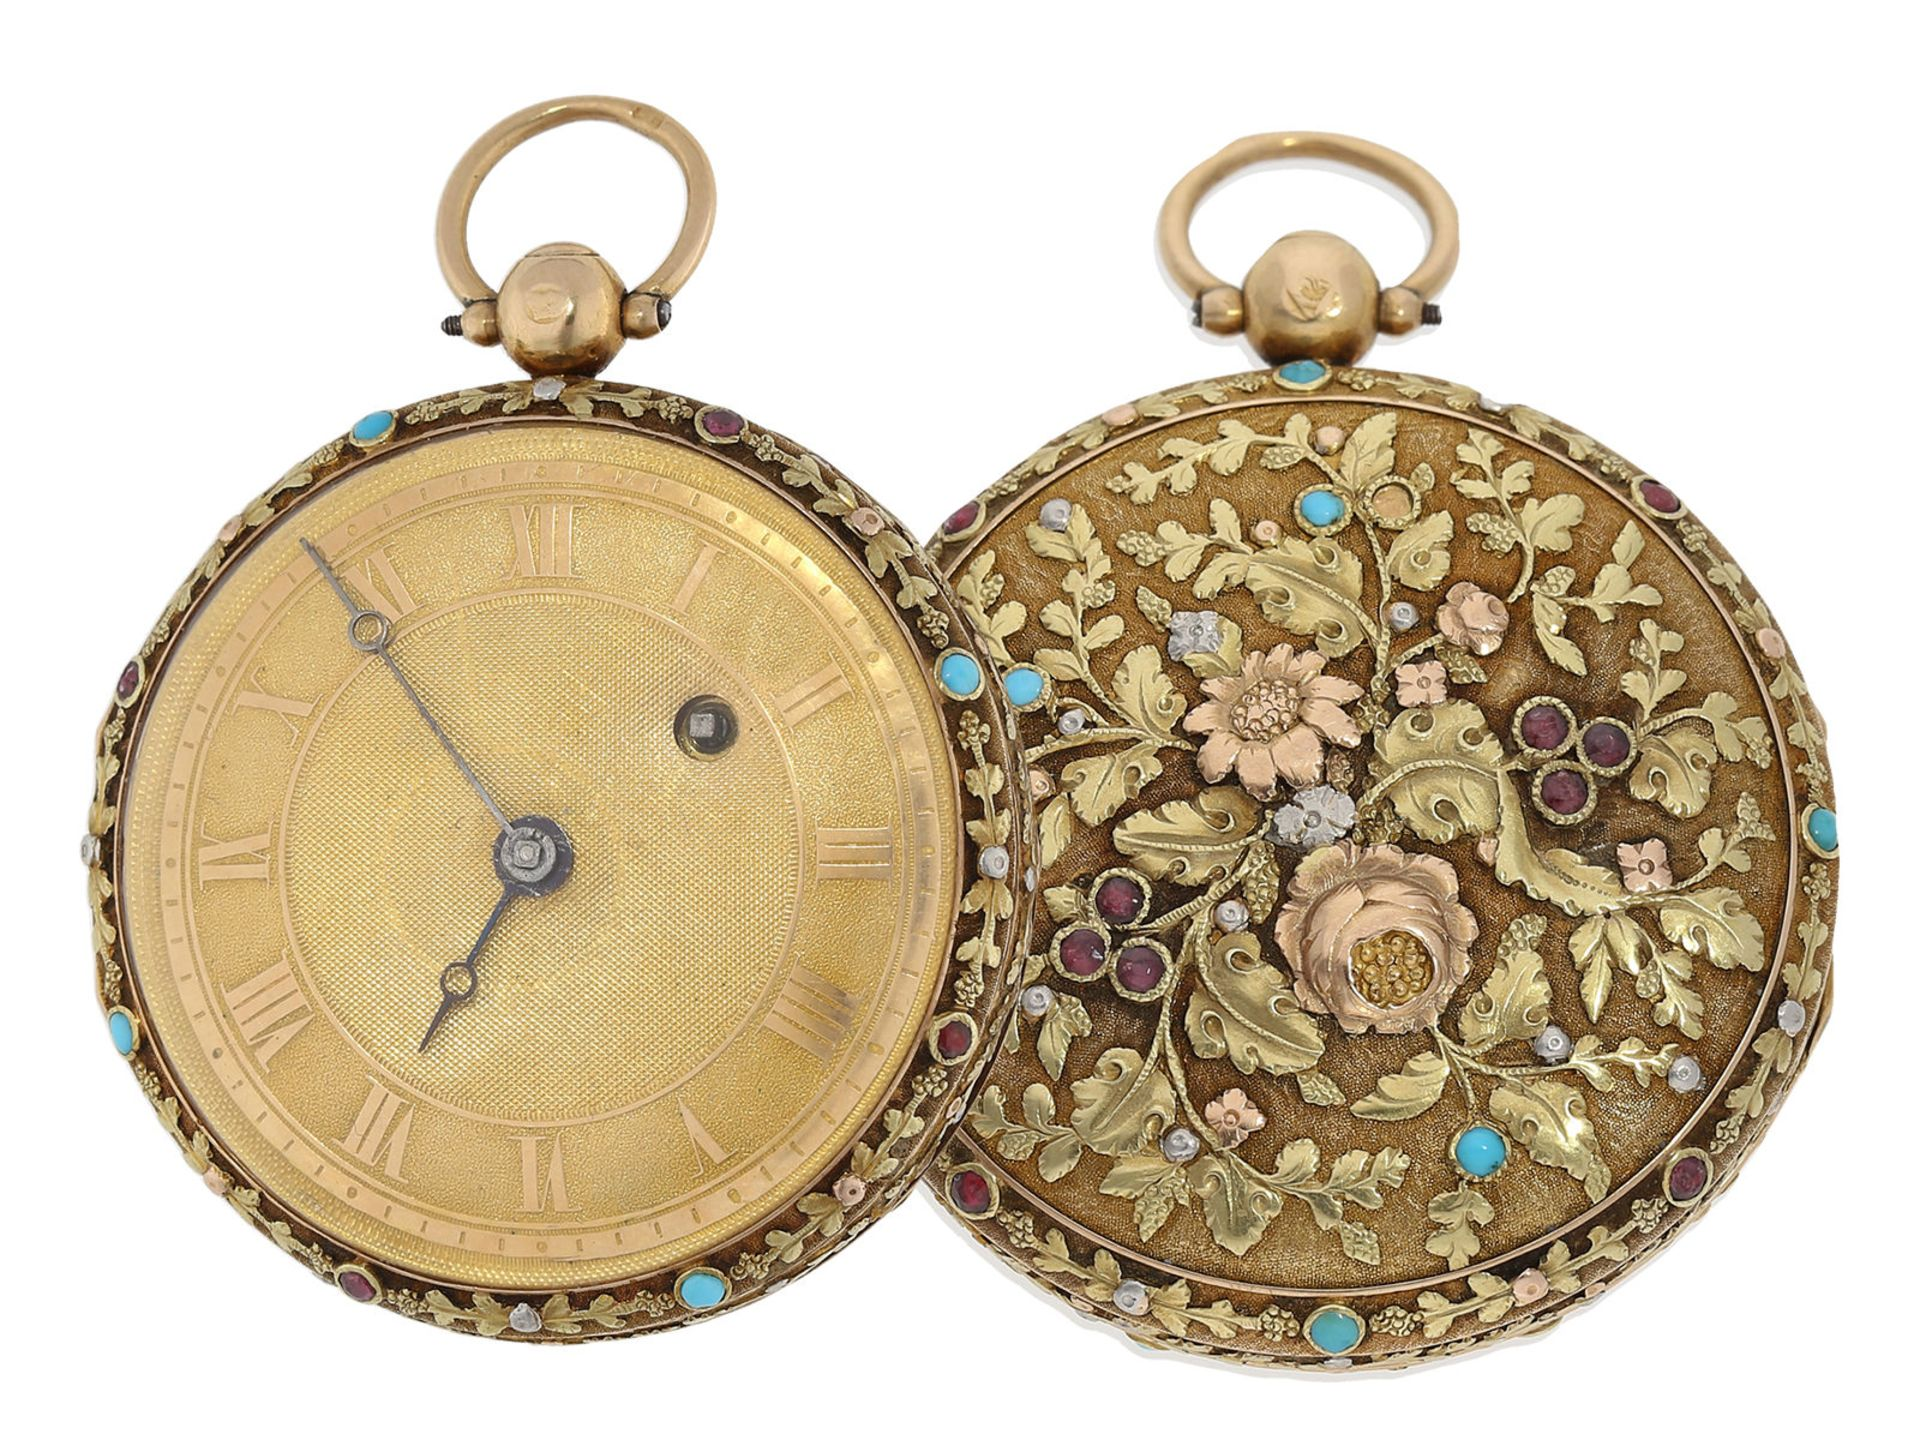 Pocket watch: museum-like 18K 4-coloured verge watch with turquoise setting and corresponding